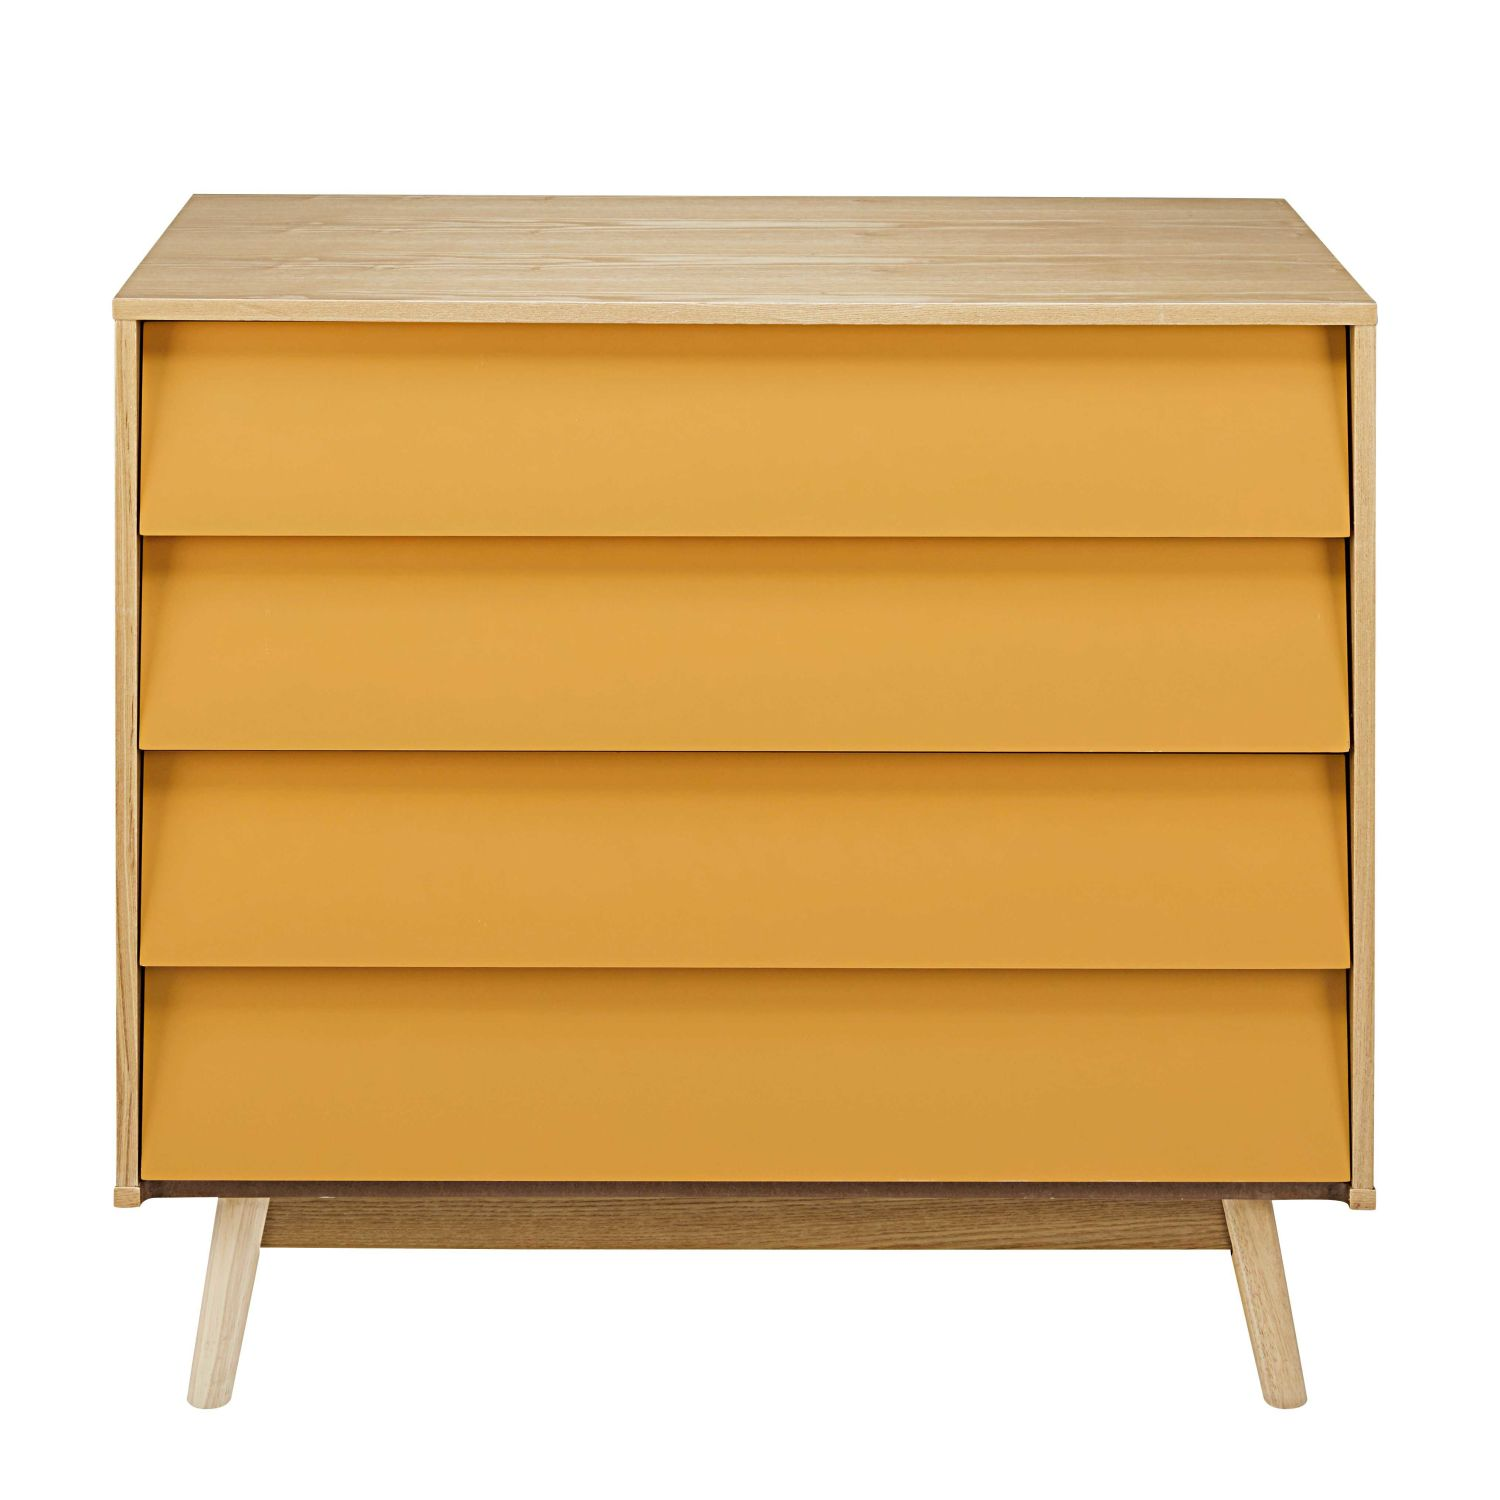 Meuble Jaune Moutarde Commode Vintage 4 Tiroirs Jaune Moutarde Maisons Du Monde